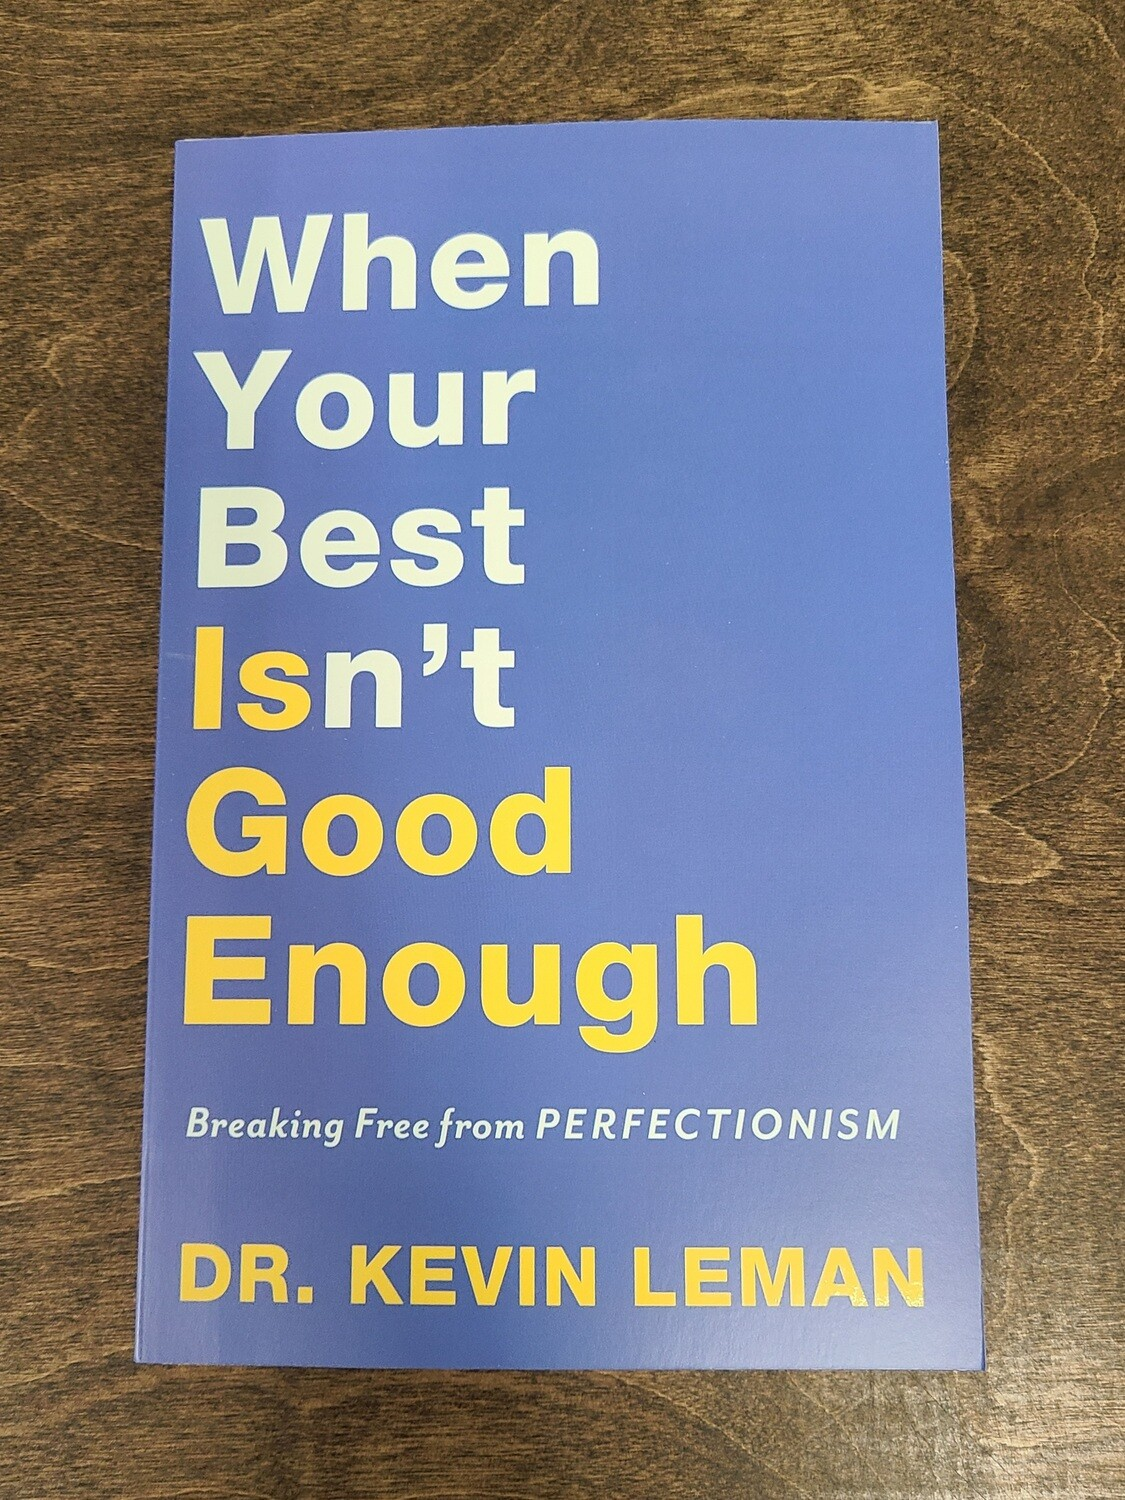 When Your Best Isn't Good Enough: Breaking Free from Perfectionism by Dr. Kevin Leman